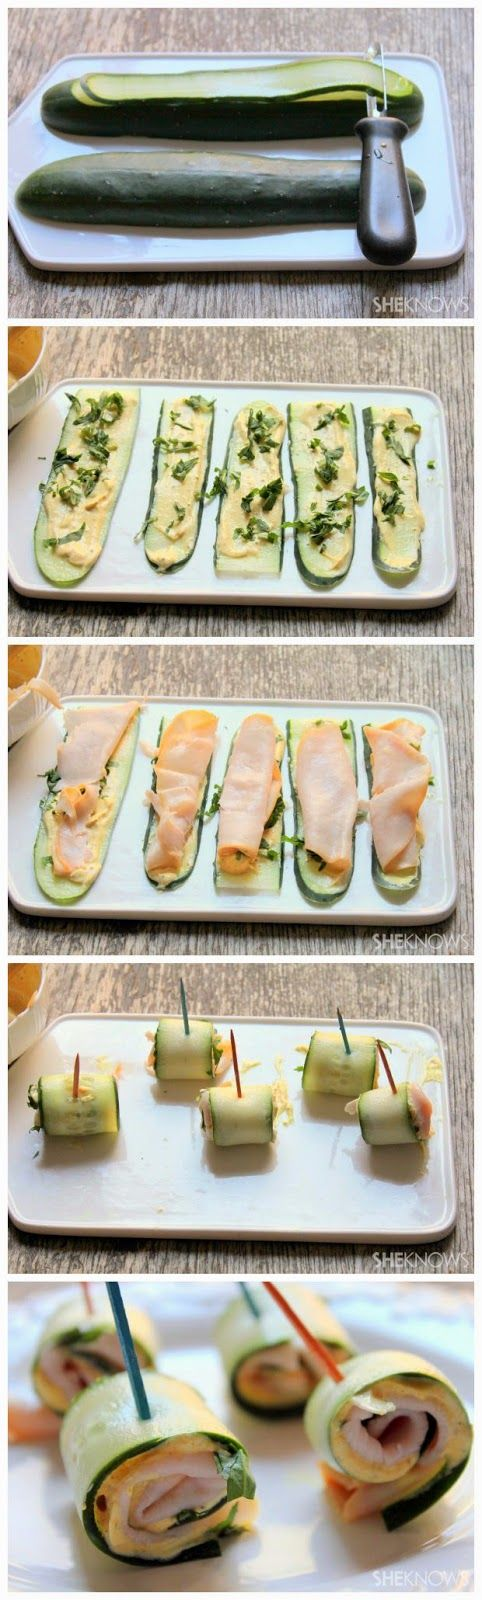 Snack Idea: Cucumber rollups with hummus and turkey [can use zucchini too] via SheKnows #lowcarb #healthy #protein